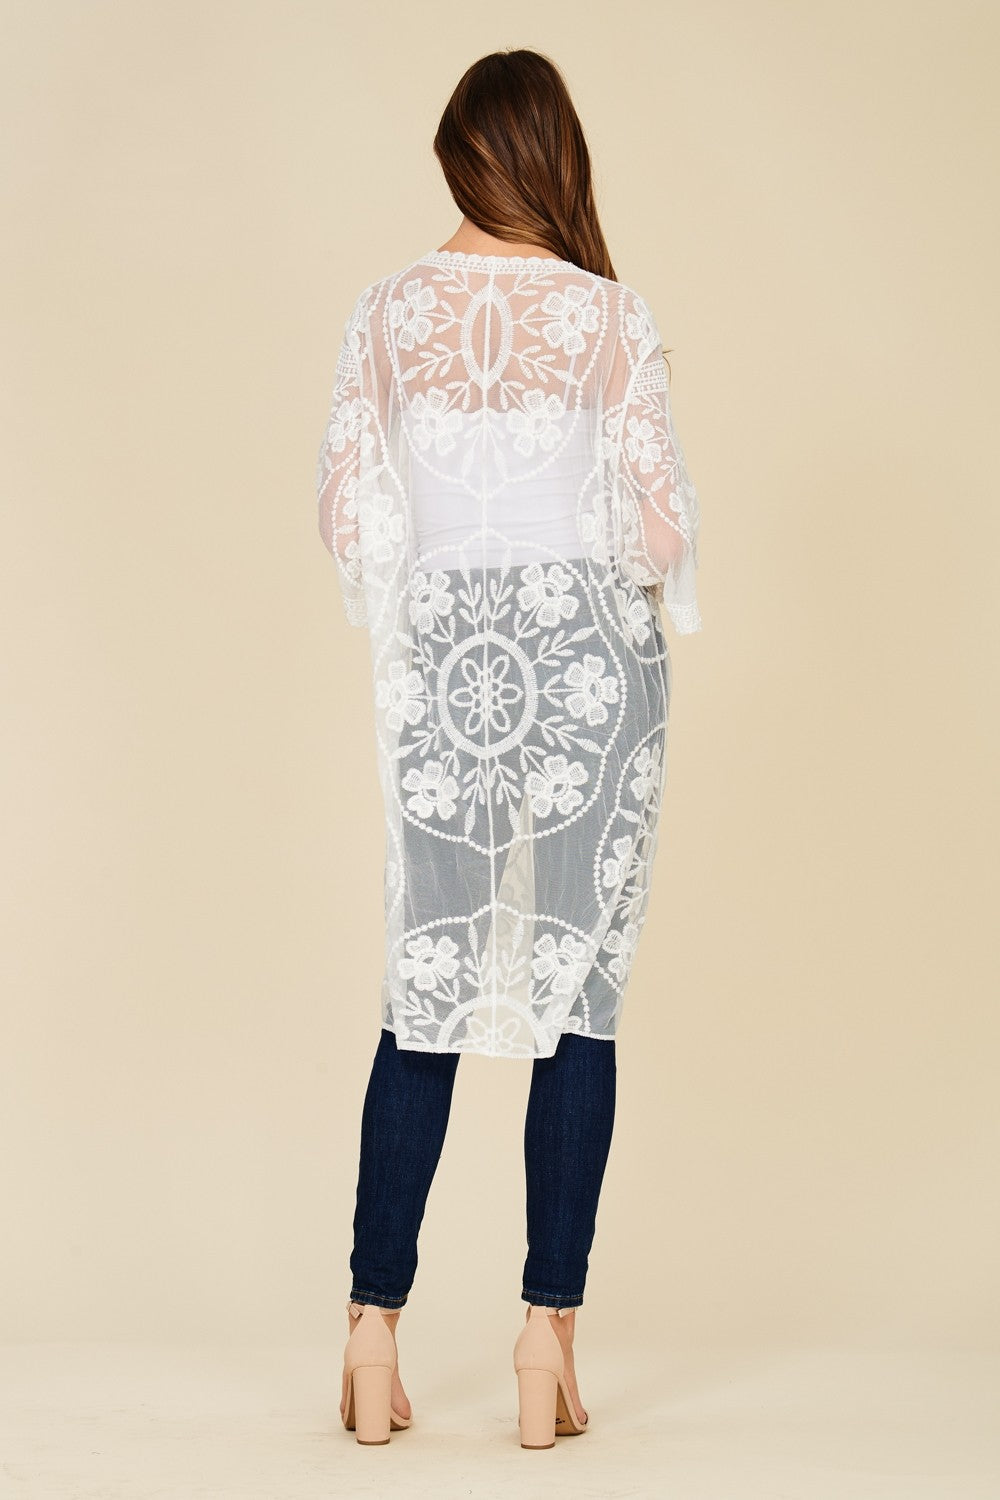 Back full view young woman wearing white sheer mesh cardigan with floral embroidery